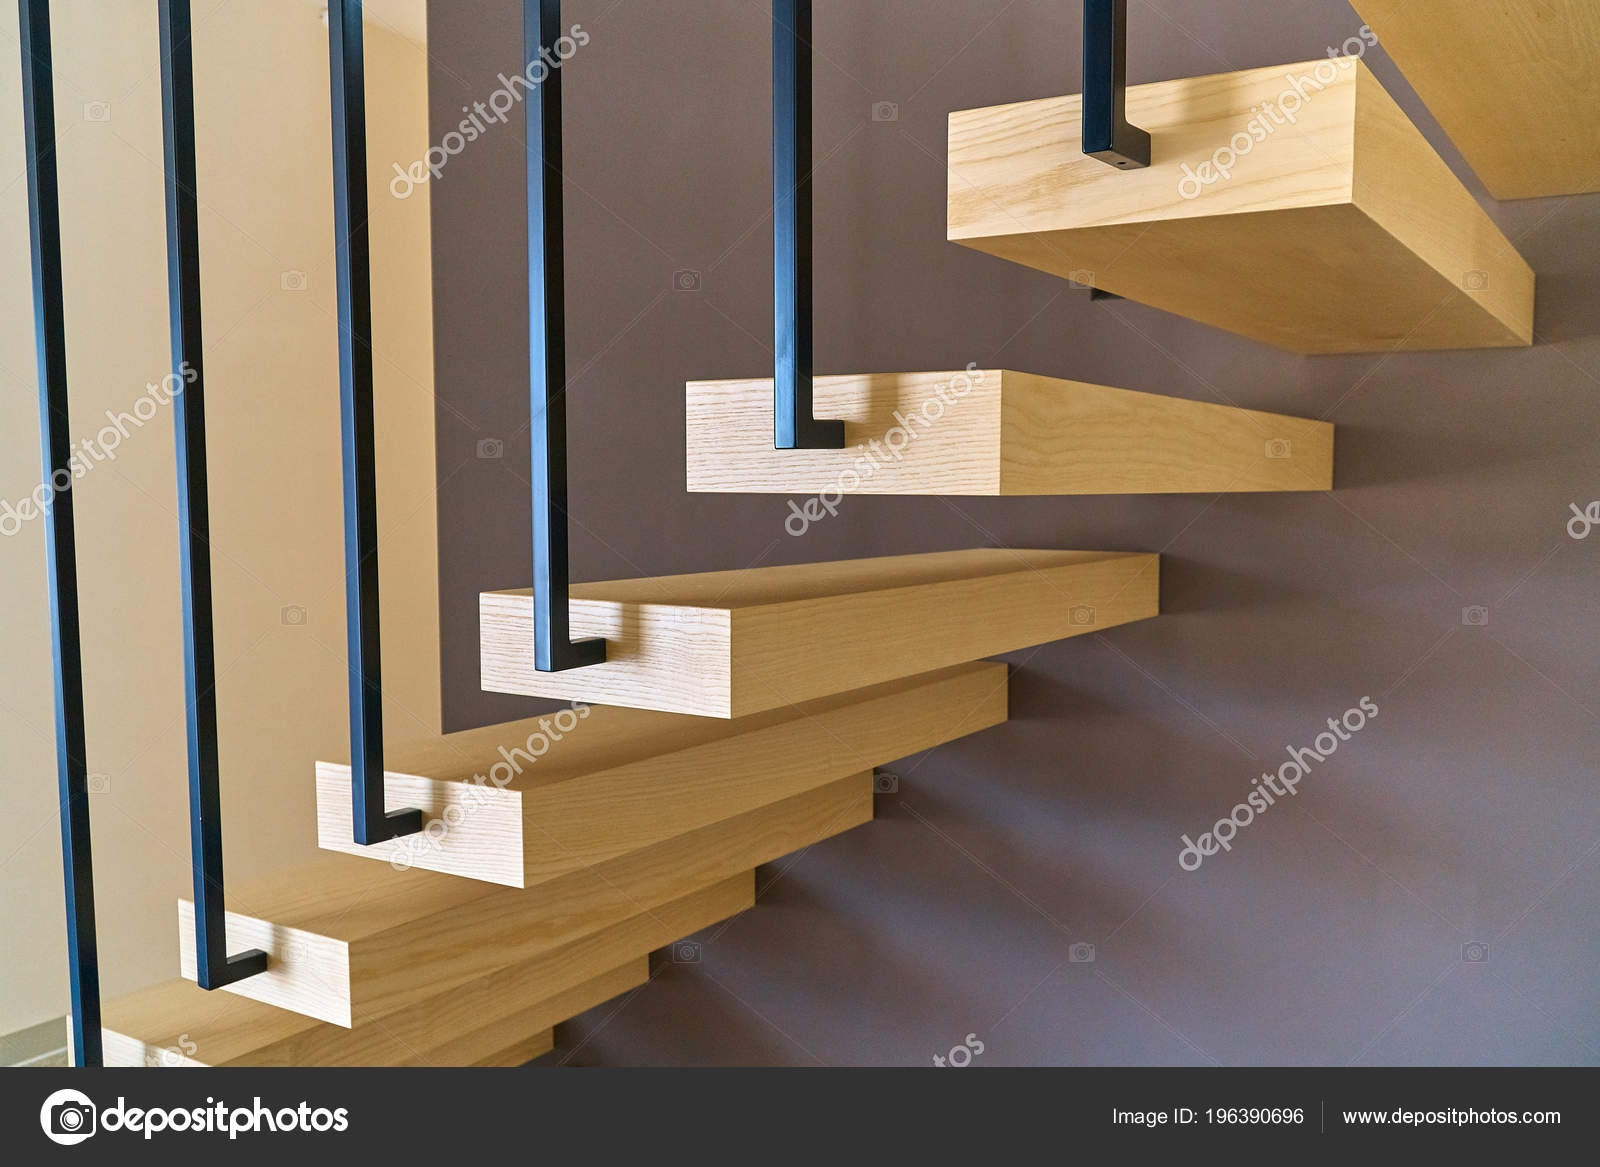 Floating Stairs Ash Lumber Stairs Railing Attached Brown Wall   Black Pipe Stair Railing   Diy   90 Degree Stair   Banister   Outdoor Stair   Stainless Steel